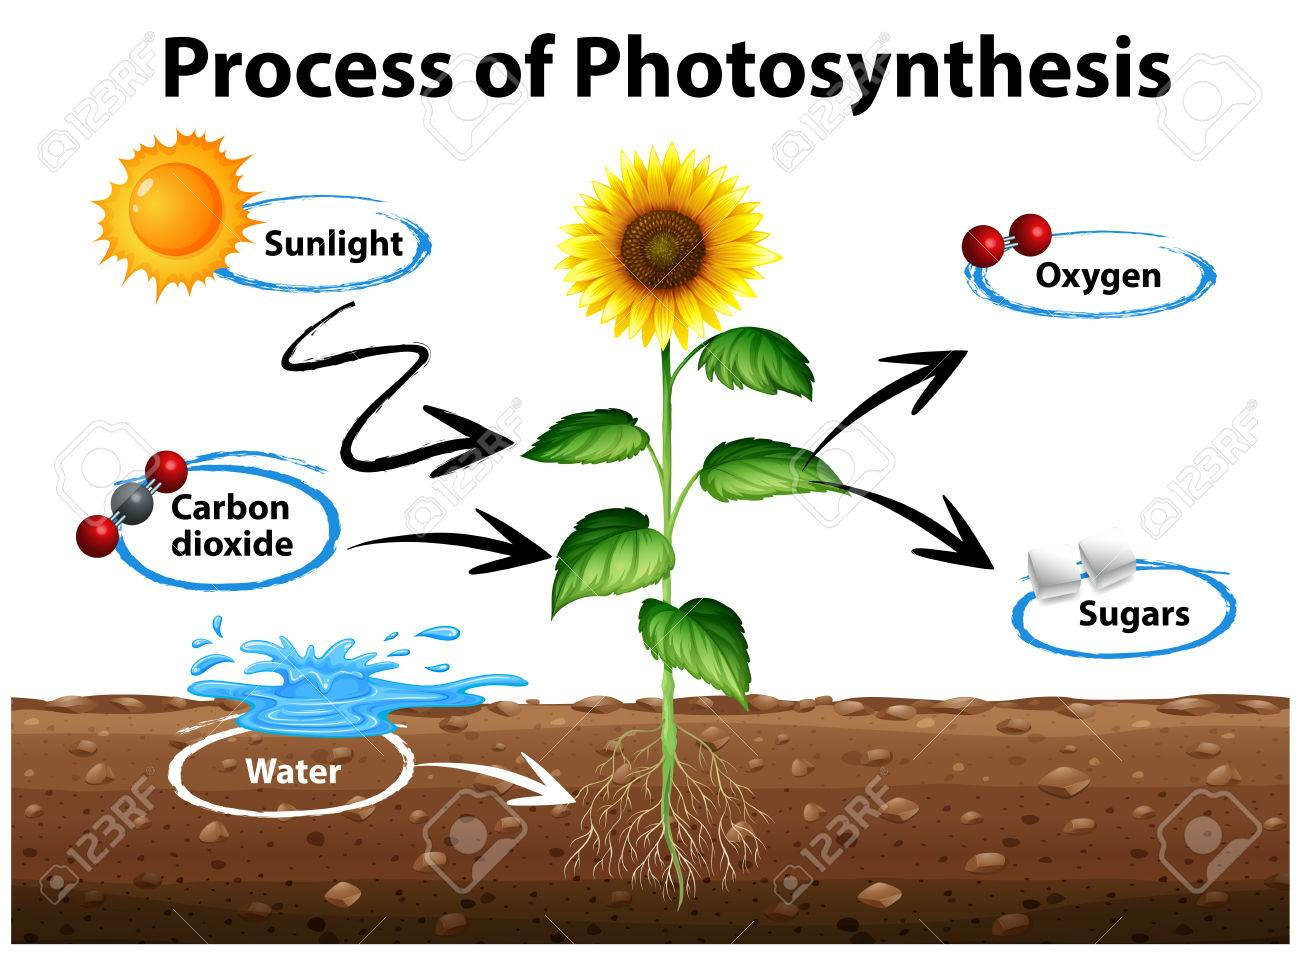 Diagram showing sunflower and process of photosynthesis illustration diagram showing sunflower and process of photosynthesis illustration stock vector 71260378 ccuart